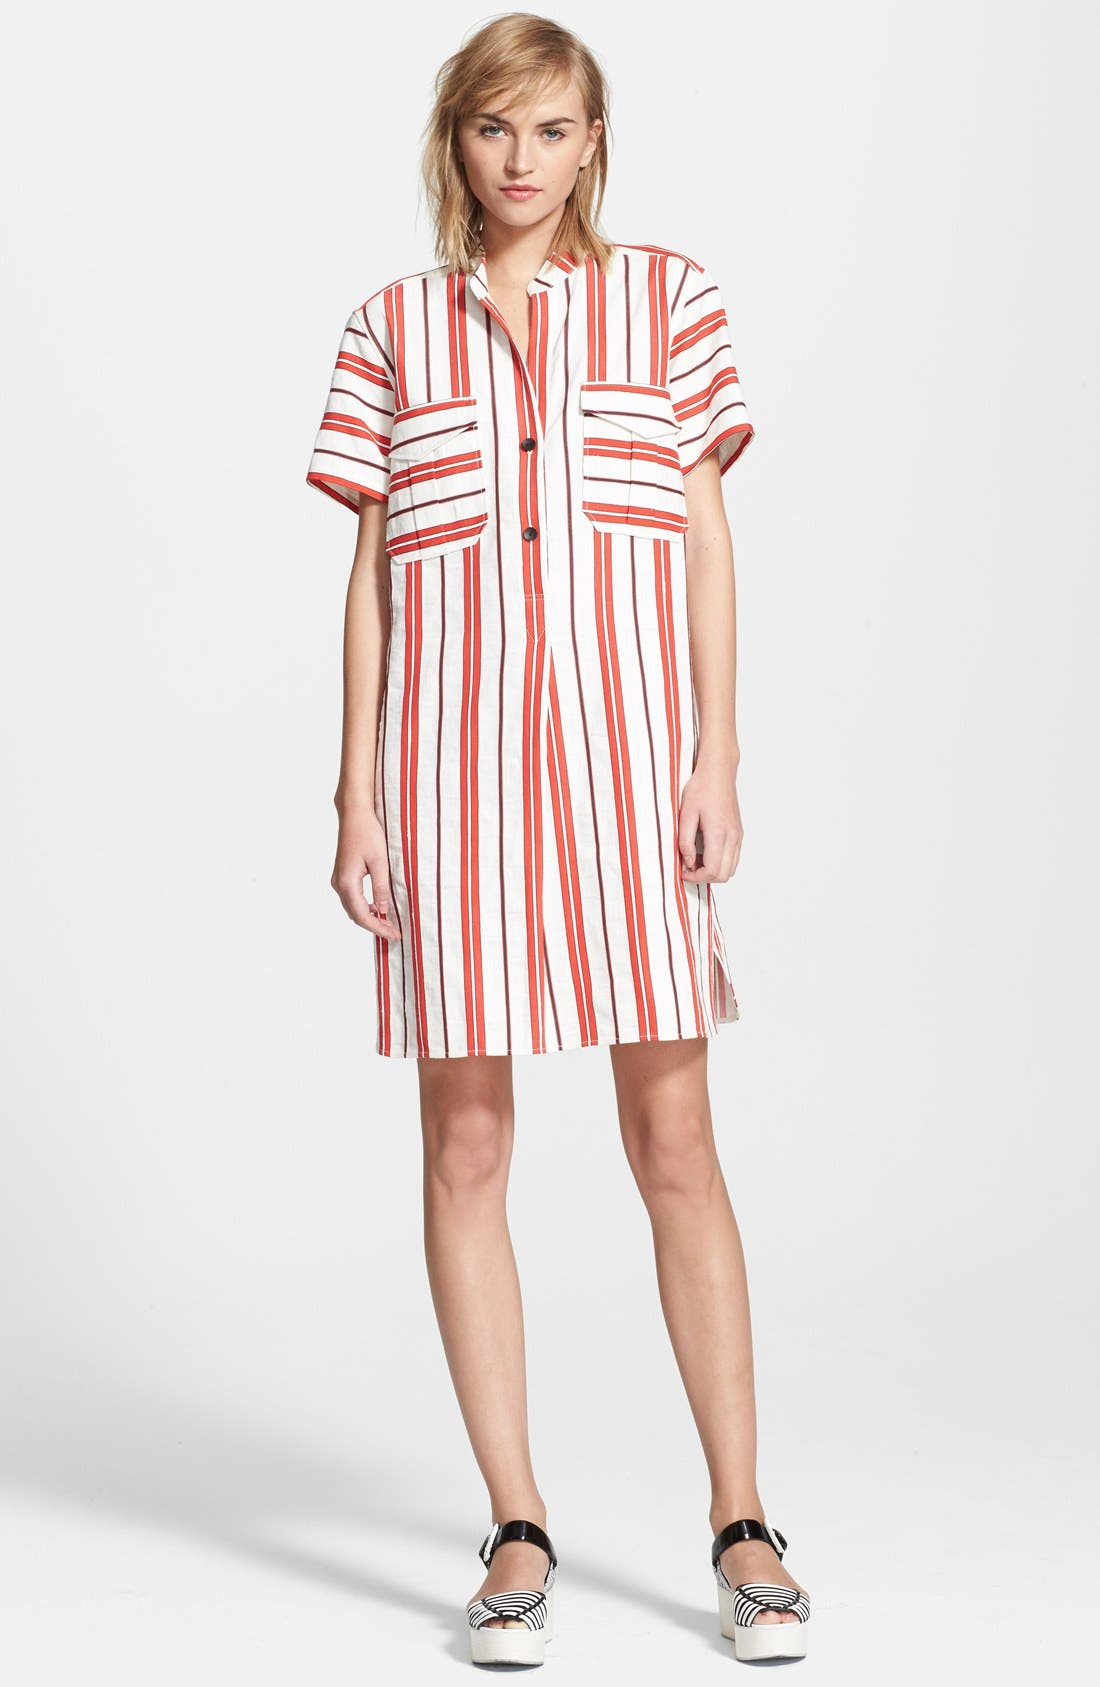 CREATURES OF THE WIND, 'Danae' Stripe Cotton Linen Shirtdress, Main thumbnail 1, color, 601